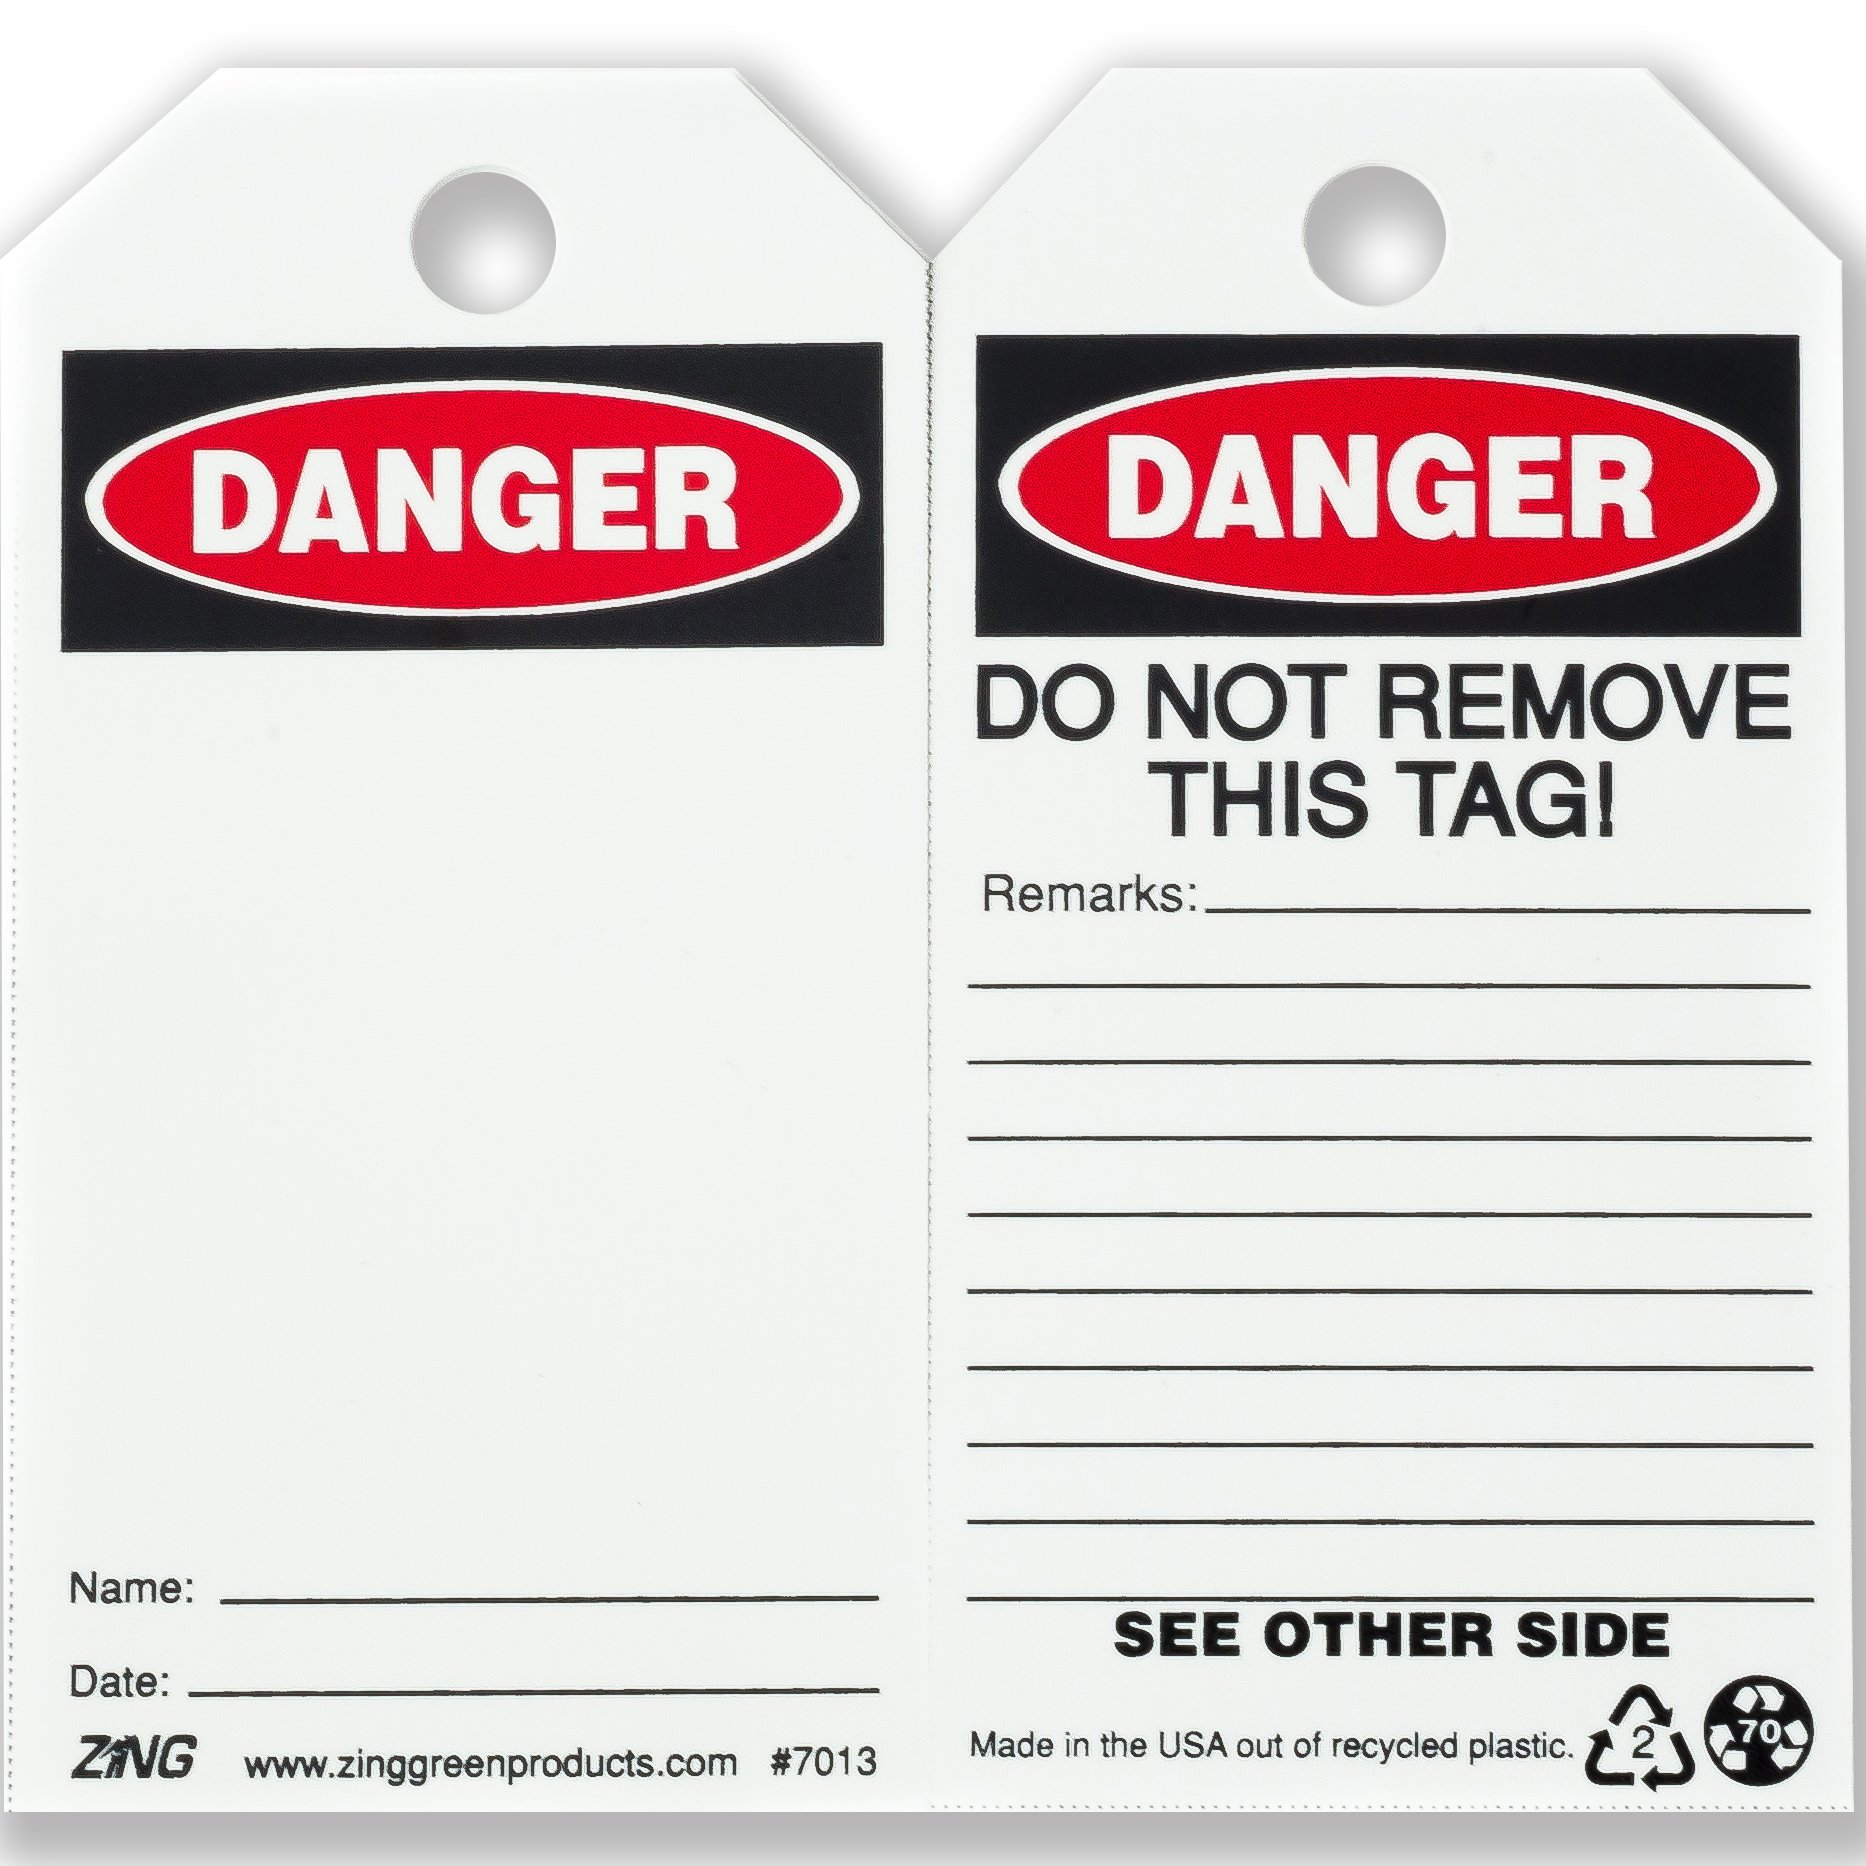 ZING 7013 Eco Safety Tag, DANGER, Blank, 5.75Hx3W, 10 Pack